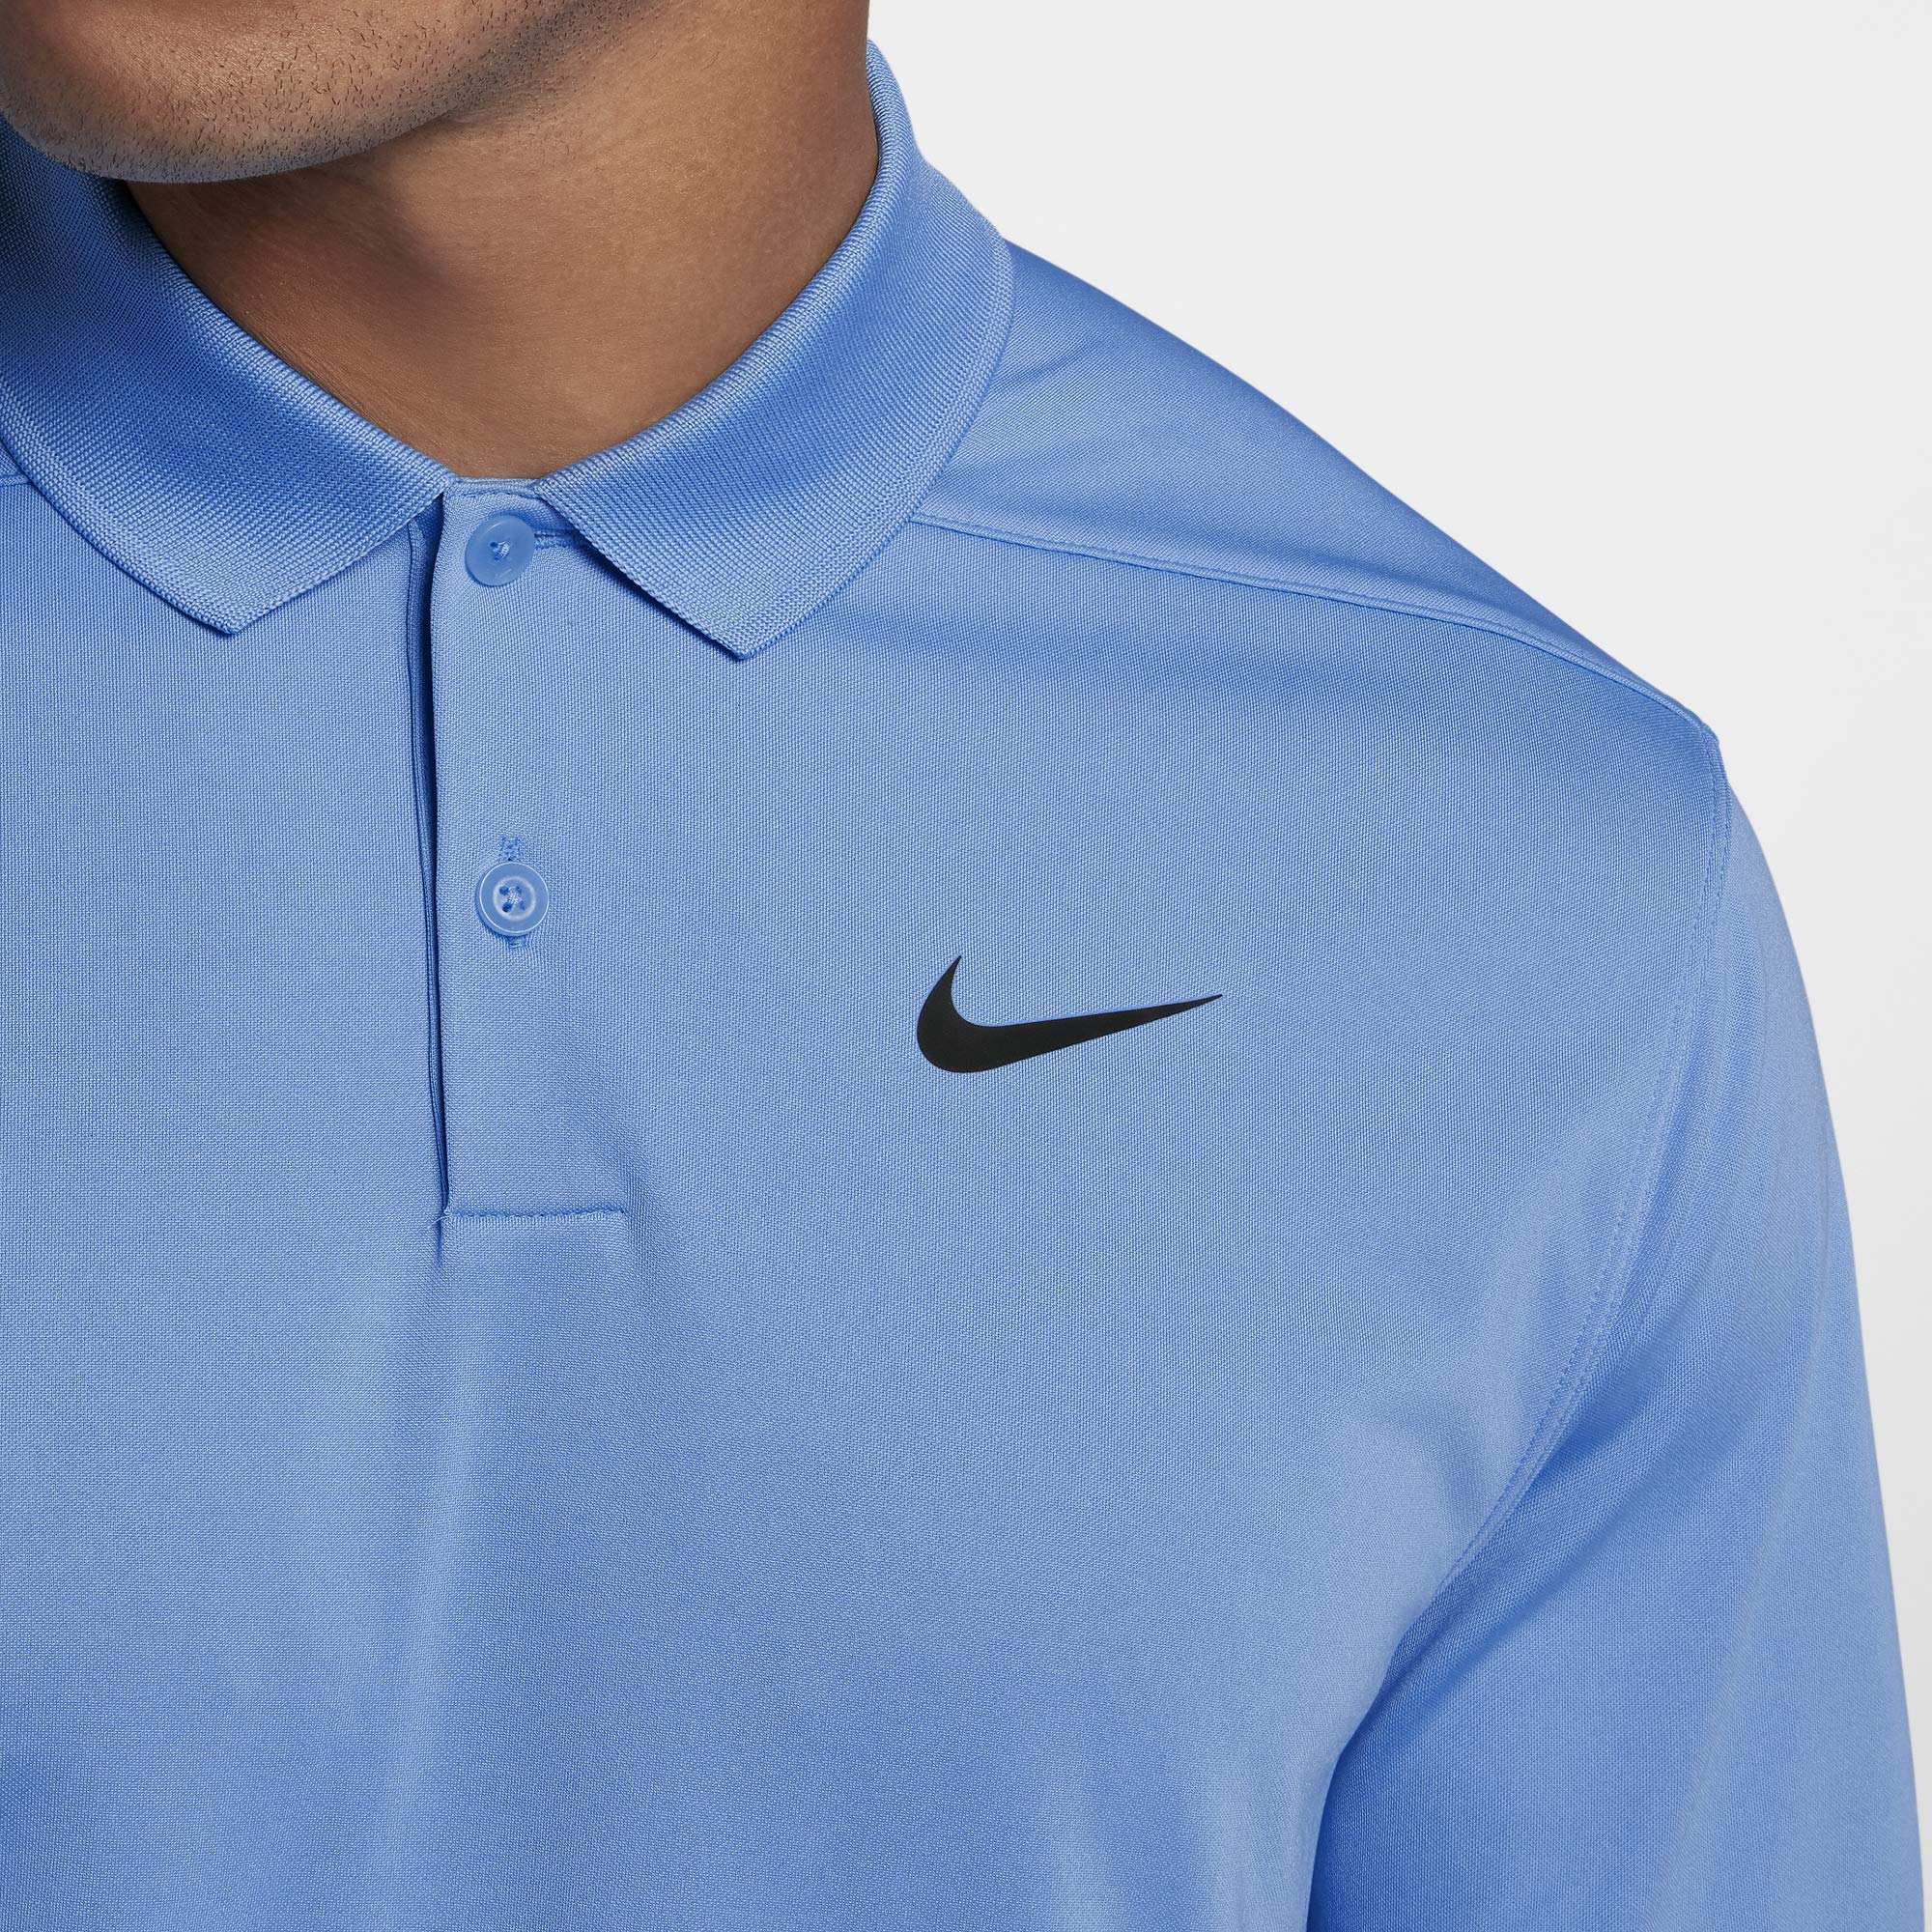 Nike Men's Dry Victory Polo Solid Left Chest, University Blue/Black, XX-Large by Nike